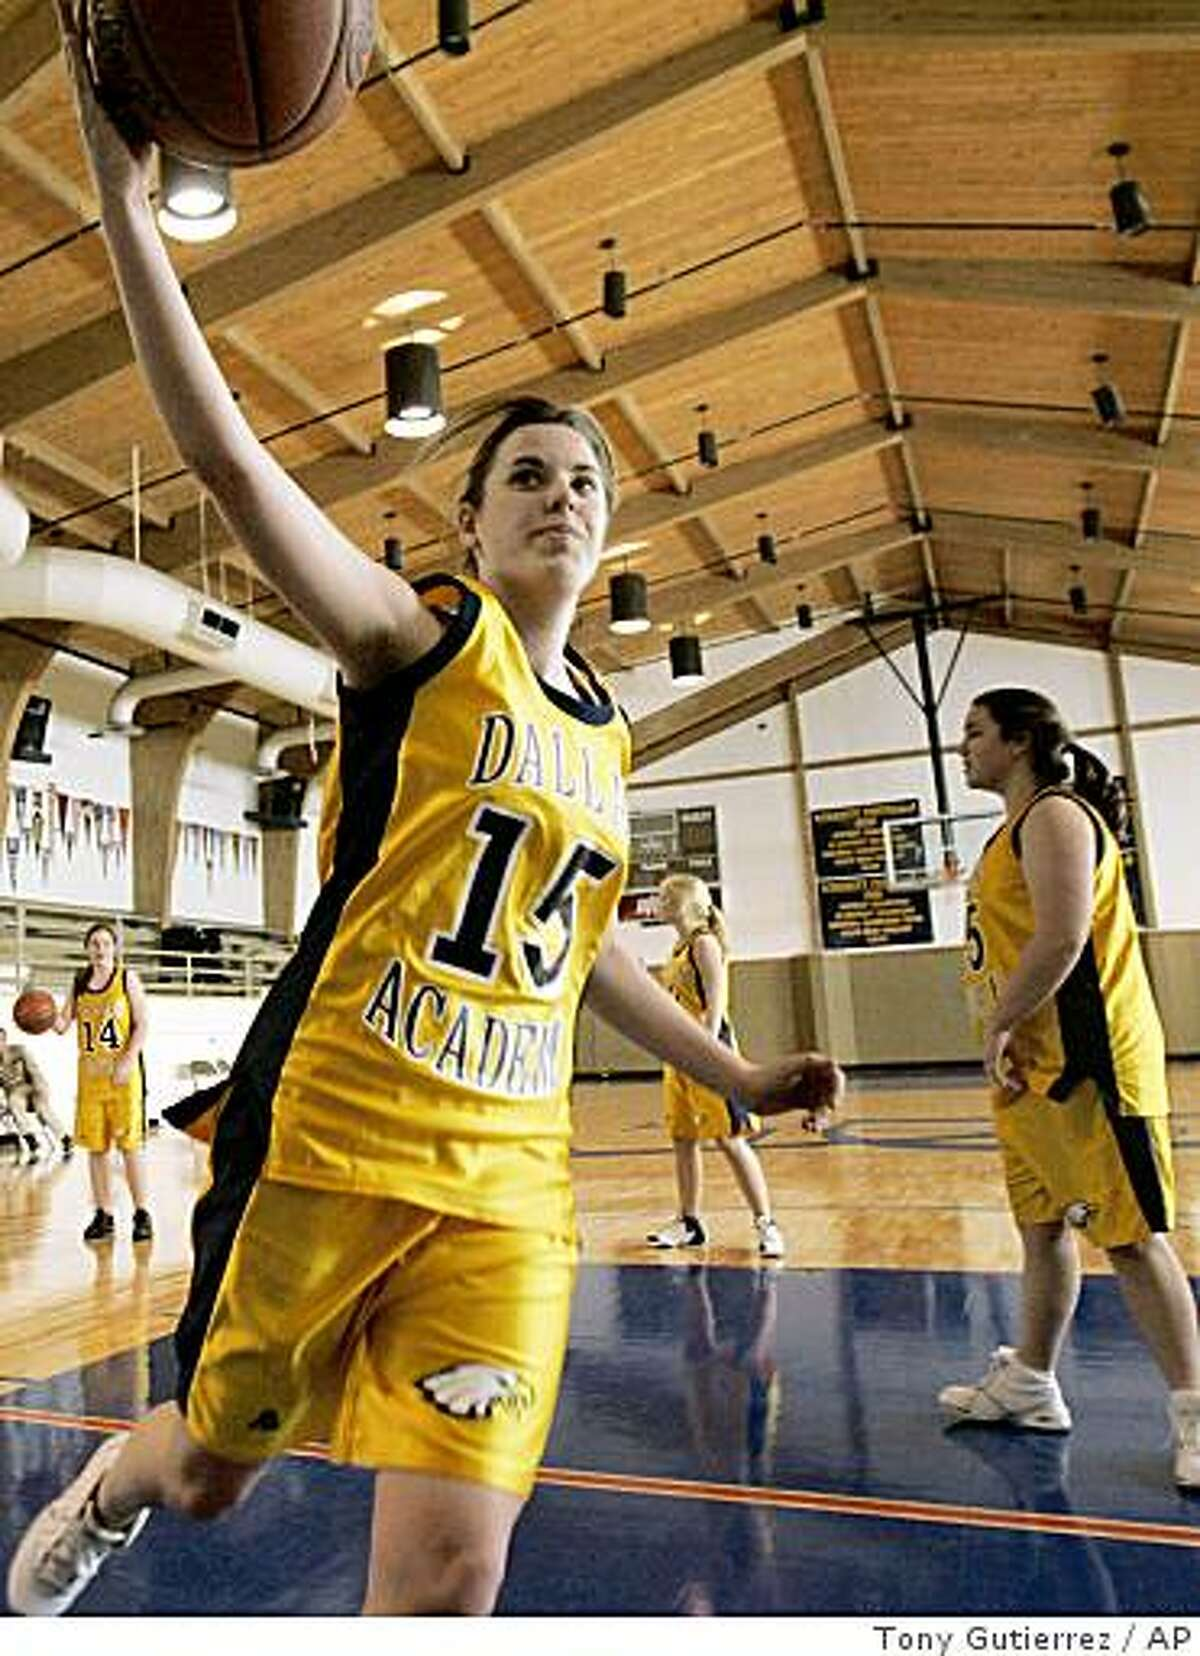 Dallas Academy's Samantha Peloza (15) grabs a rebound during a shoot-around with teammates in the schools gymnasium in Dallas, Thursday, Jan. 22, 2009. Covenant, a private Christian school in Dallas, defeated Dallas Academy 100-0 last week. The winning school now says it wants to do the right thing by seeking a forfeit and apologizing for the margin of victory. (AP Photo/Tony Gutierrez)